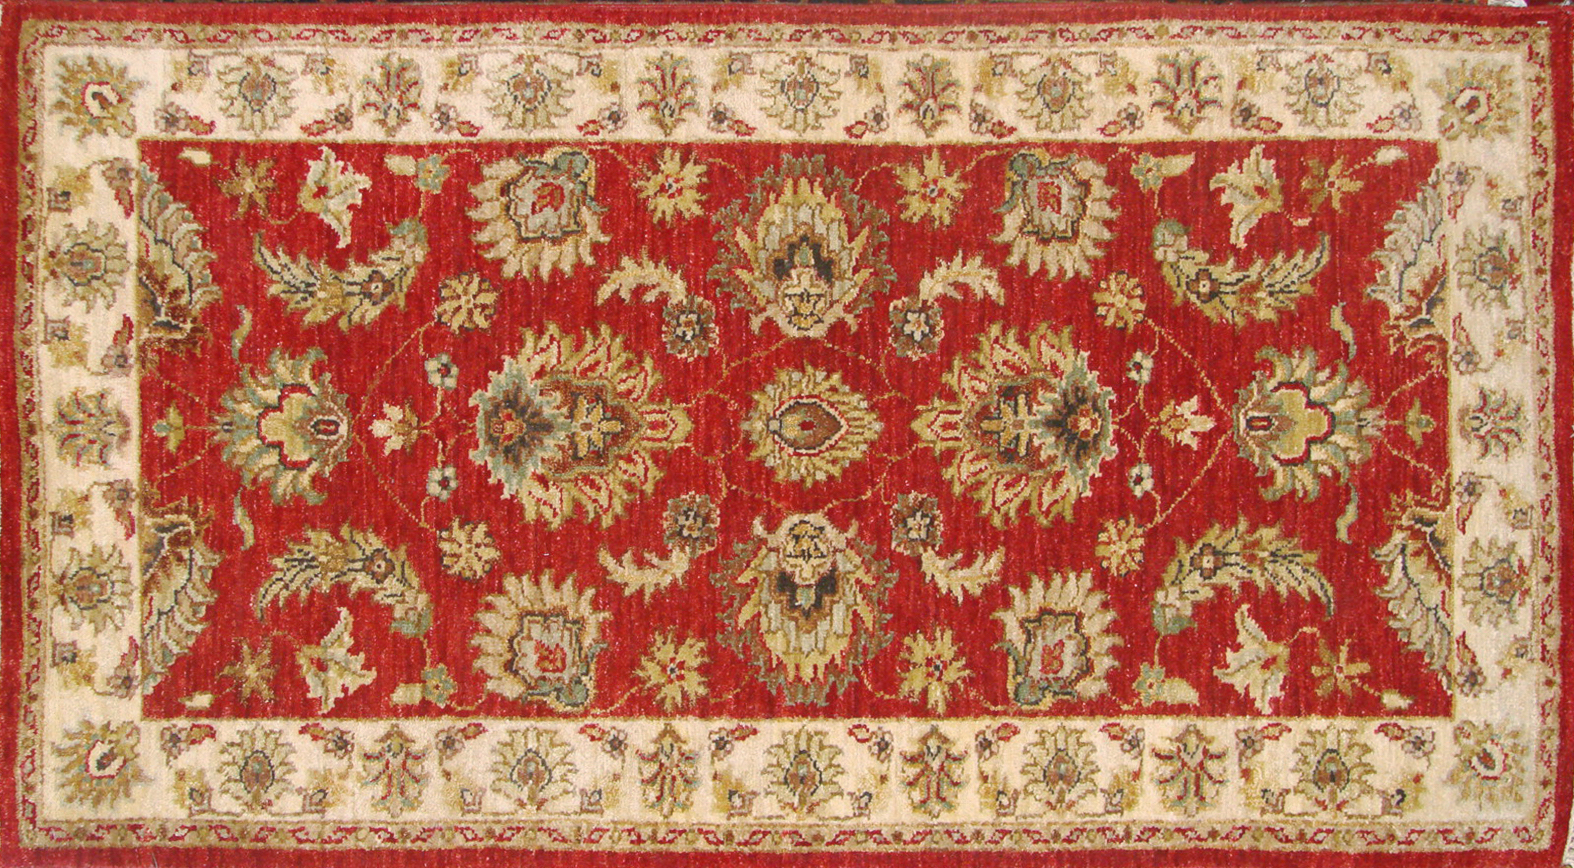 2X4 Traditional Hand Knotted Wool Area Rug - MR19087